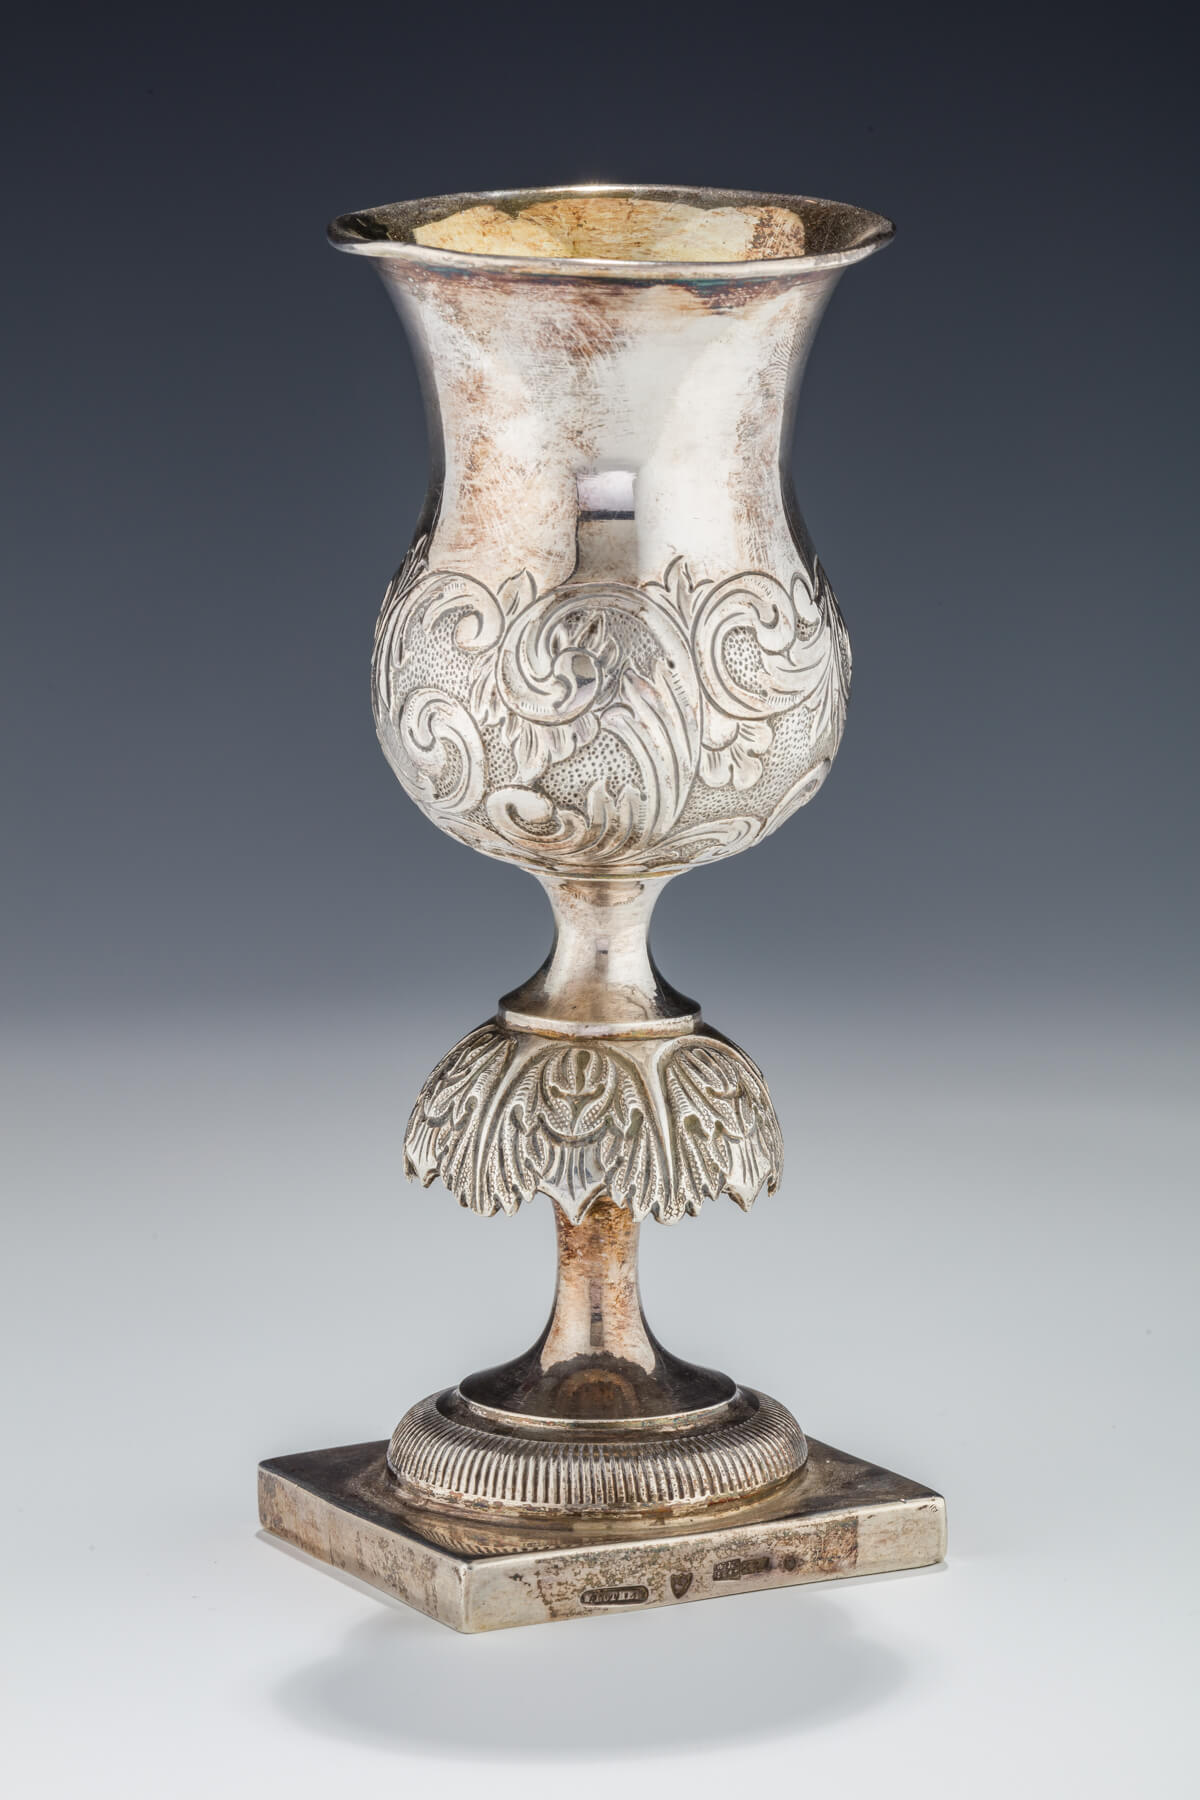 015. A Large Silver Kiddush Goblet by William Luther